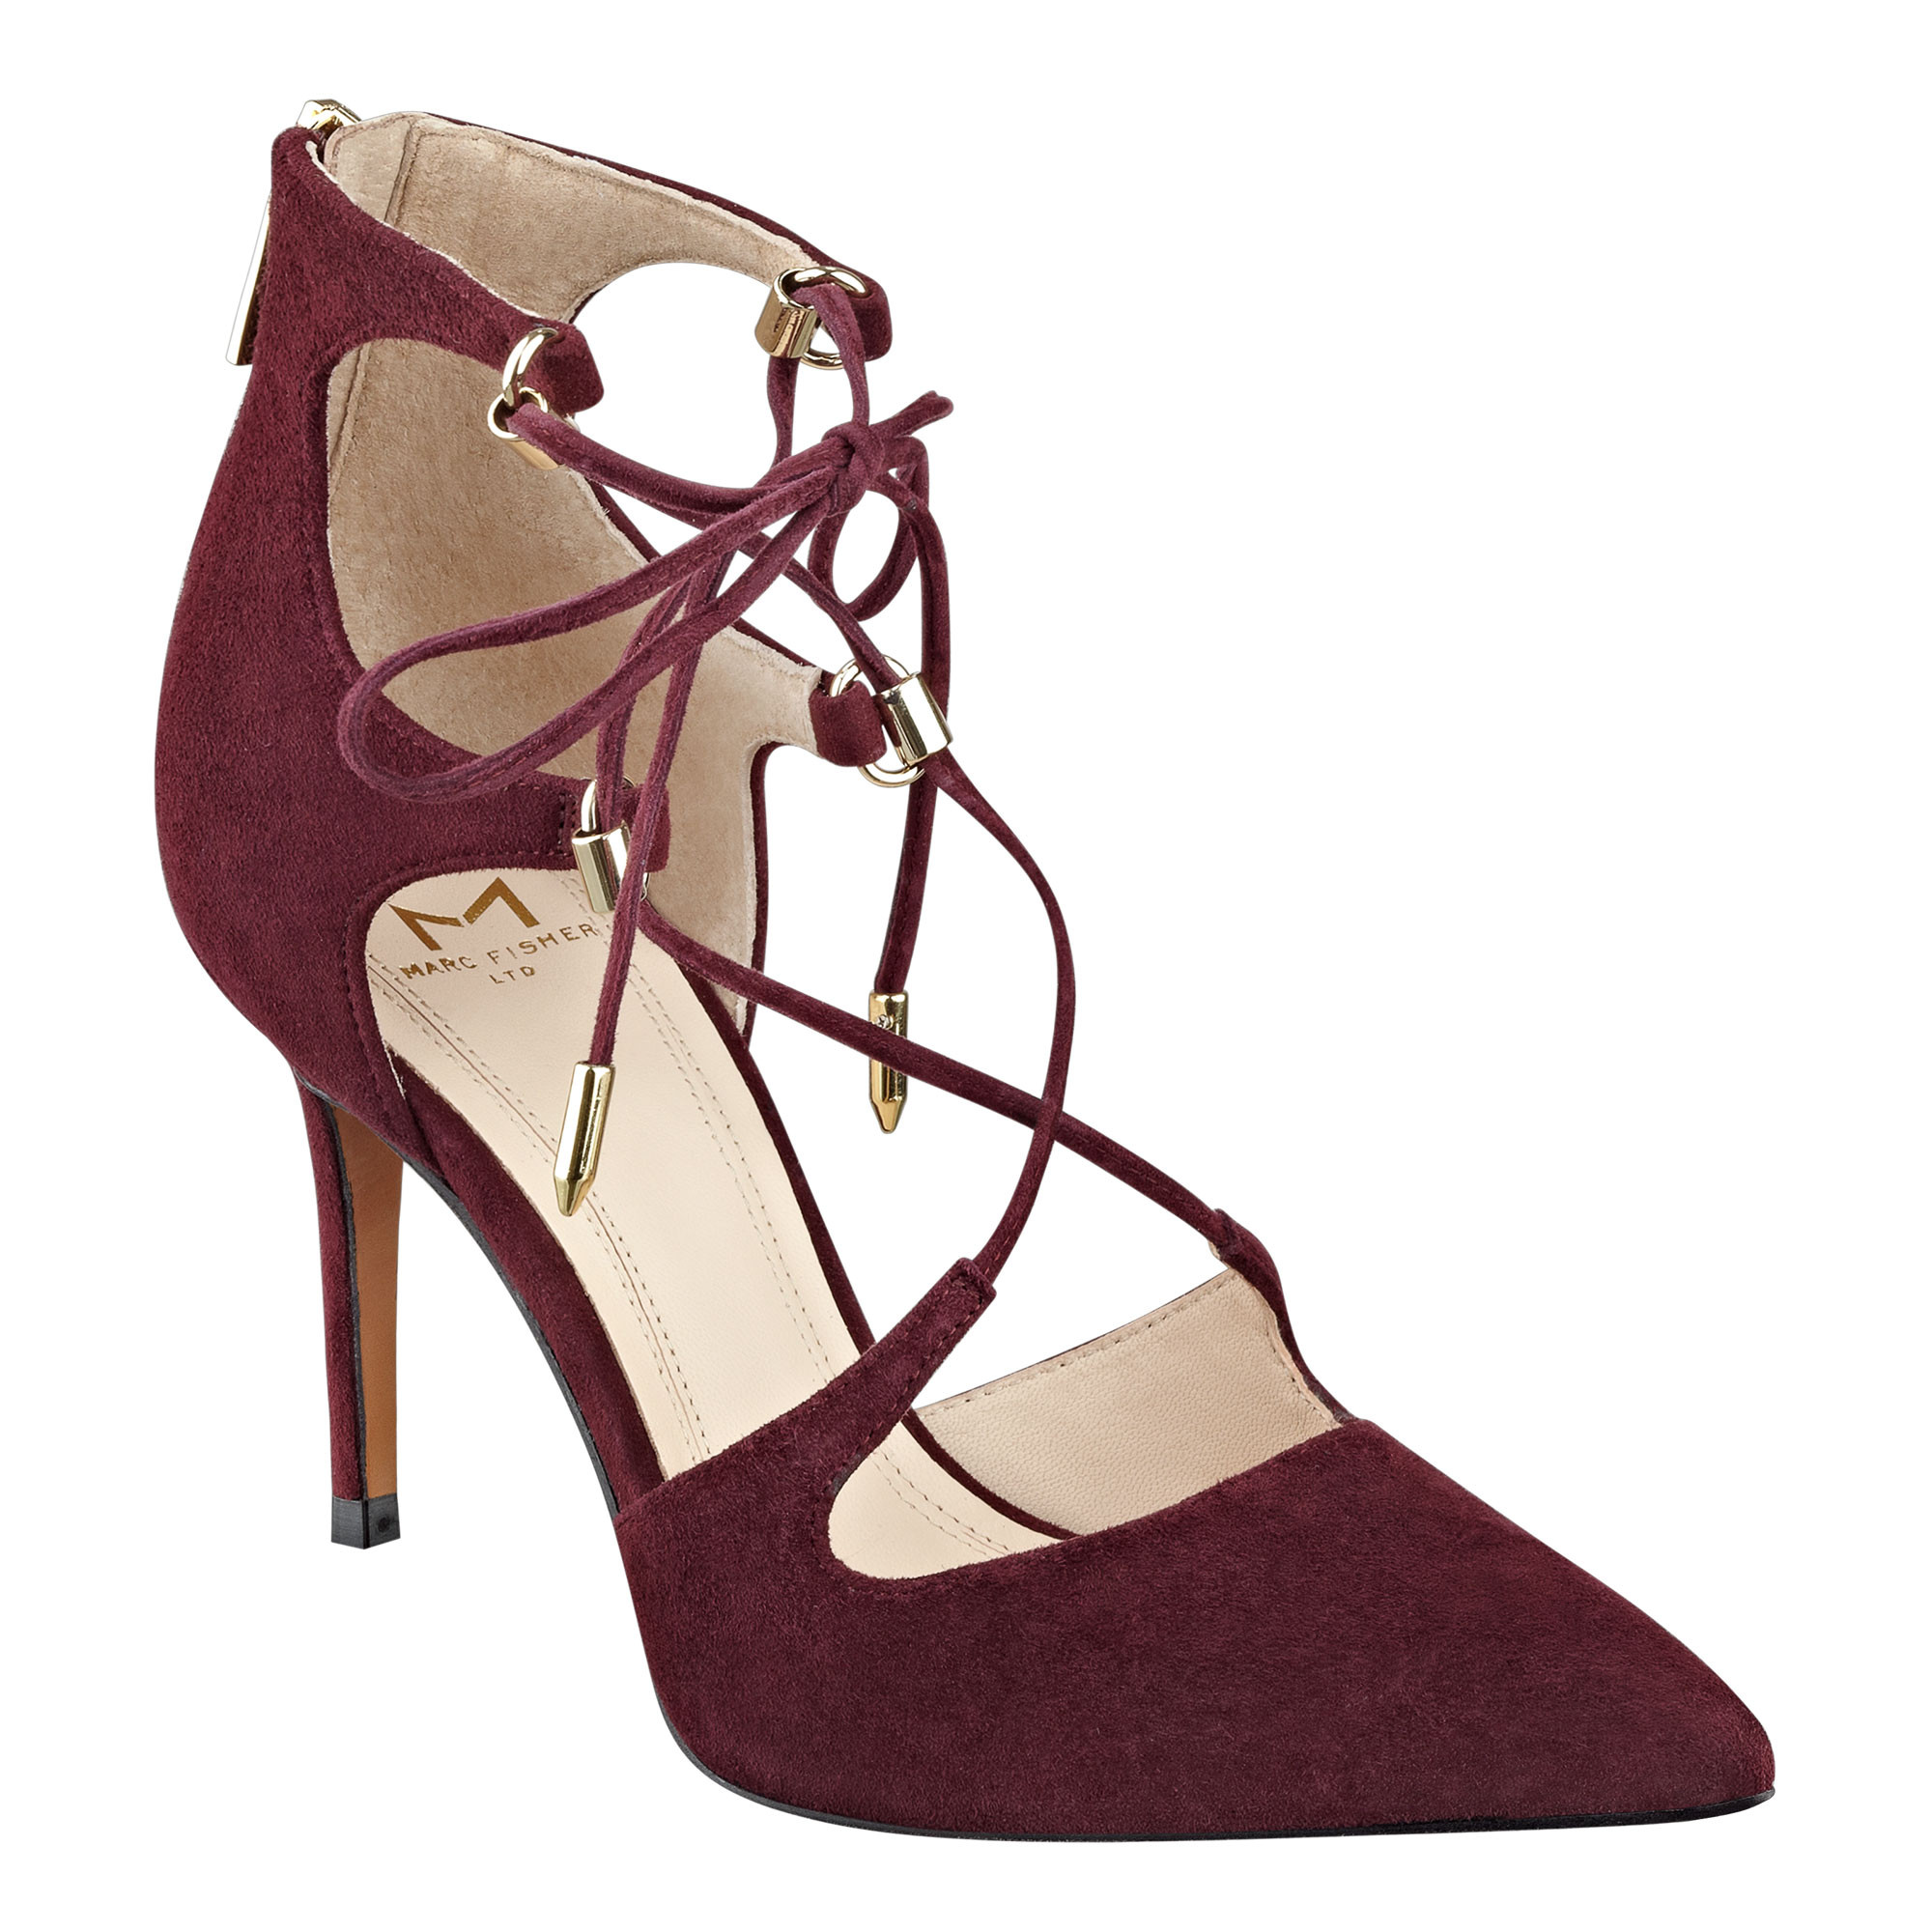 6adee3cbbef Marc Fisher Womens Toni Suede Closed Toe Ankle Strap Classic Pumps ...